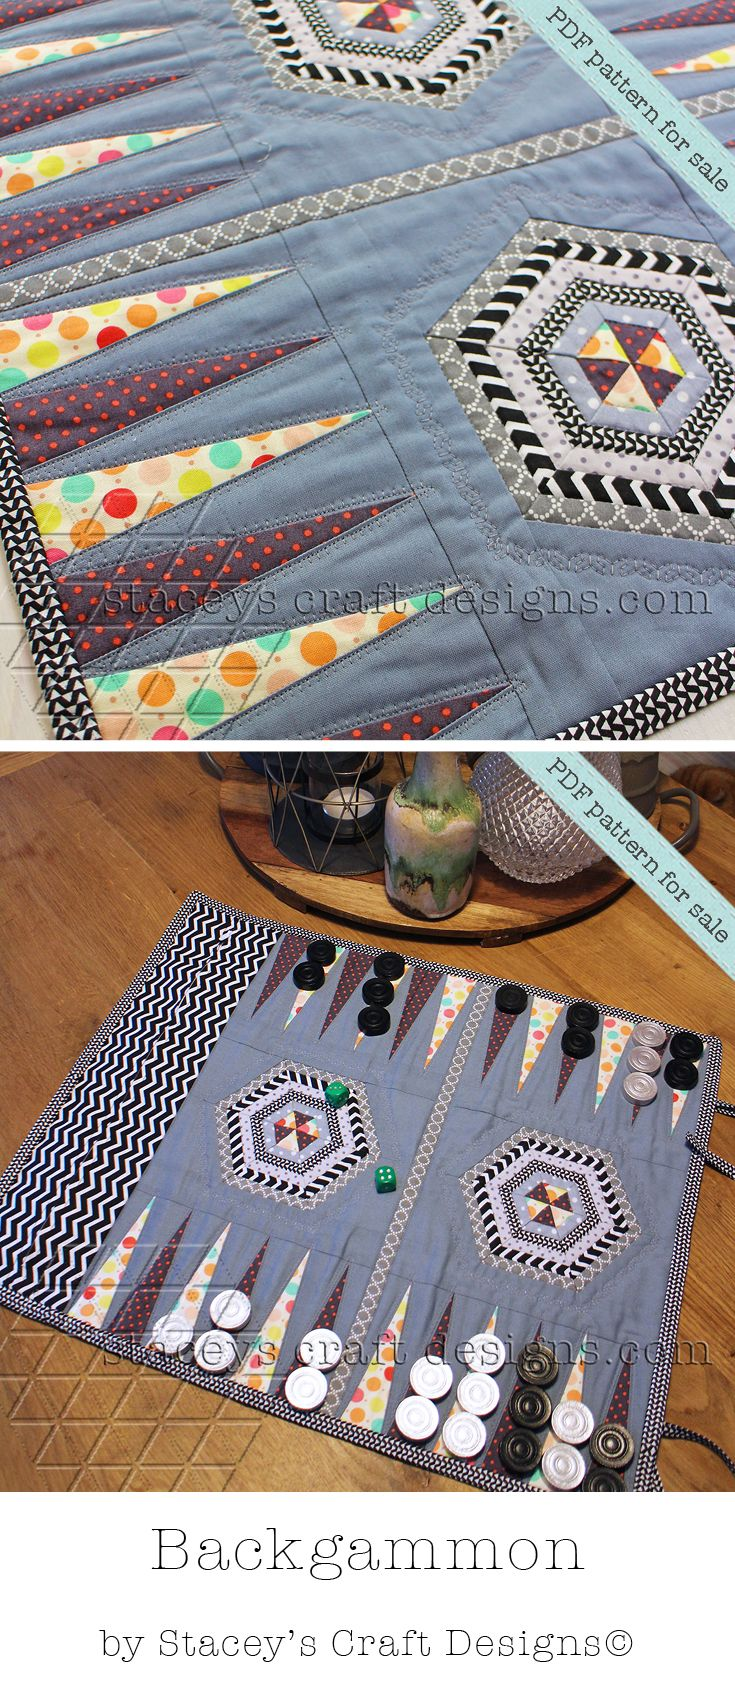 131 best Ideen images on Pinterest | Sewing ideas, Sewing projects ...